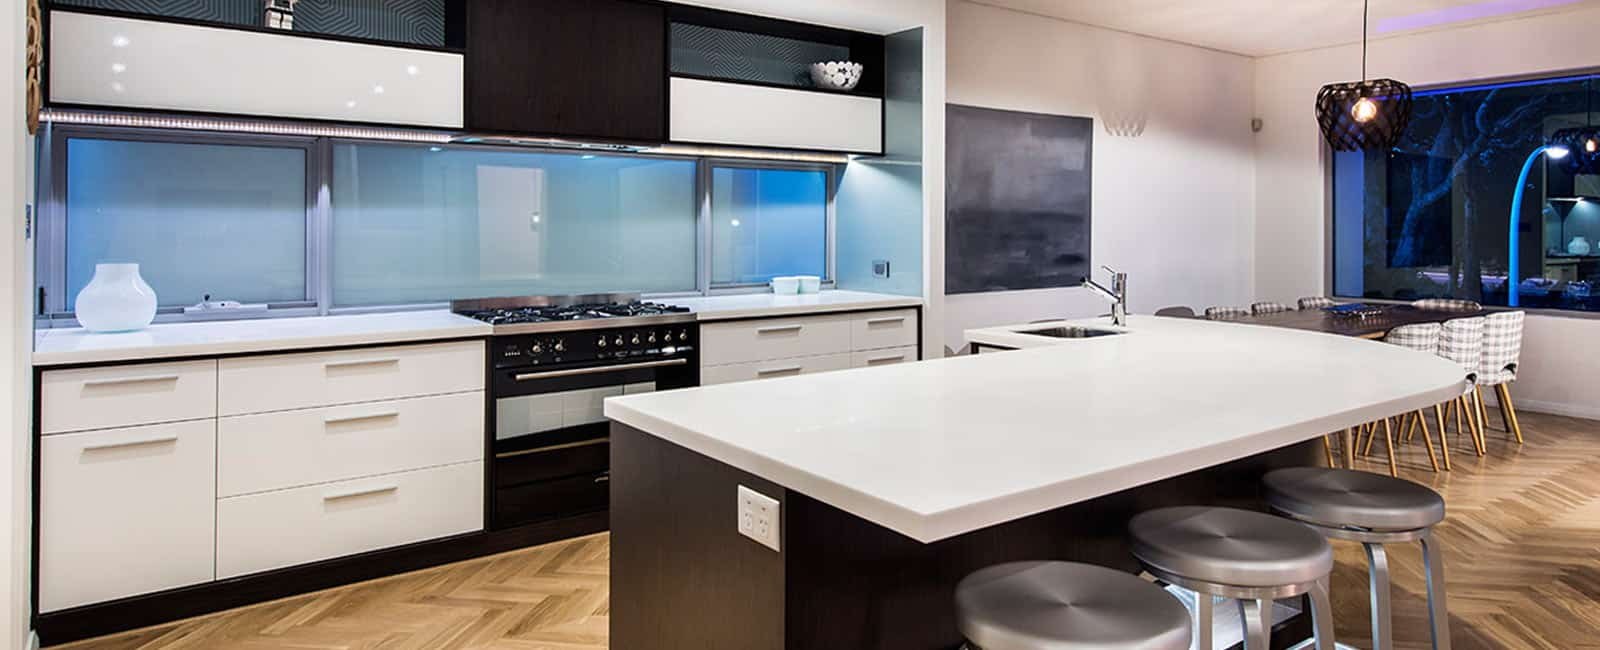 kitchens perth | kitchen design & renovations - kitchen